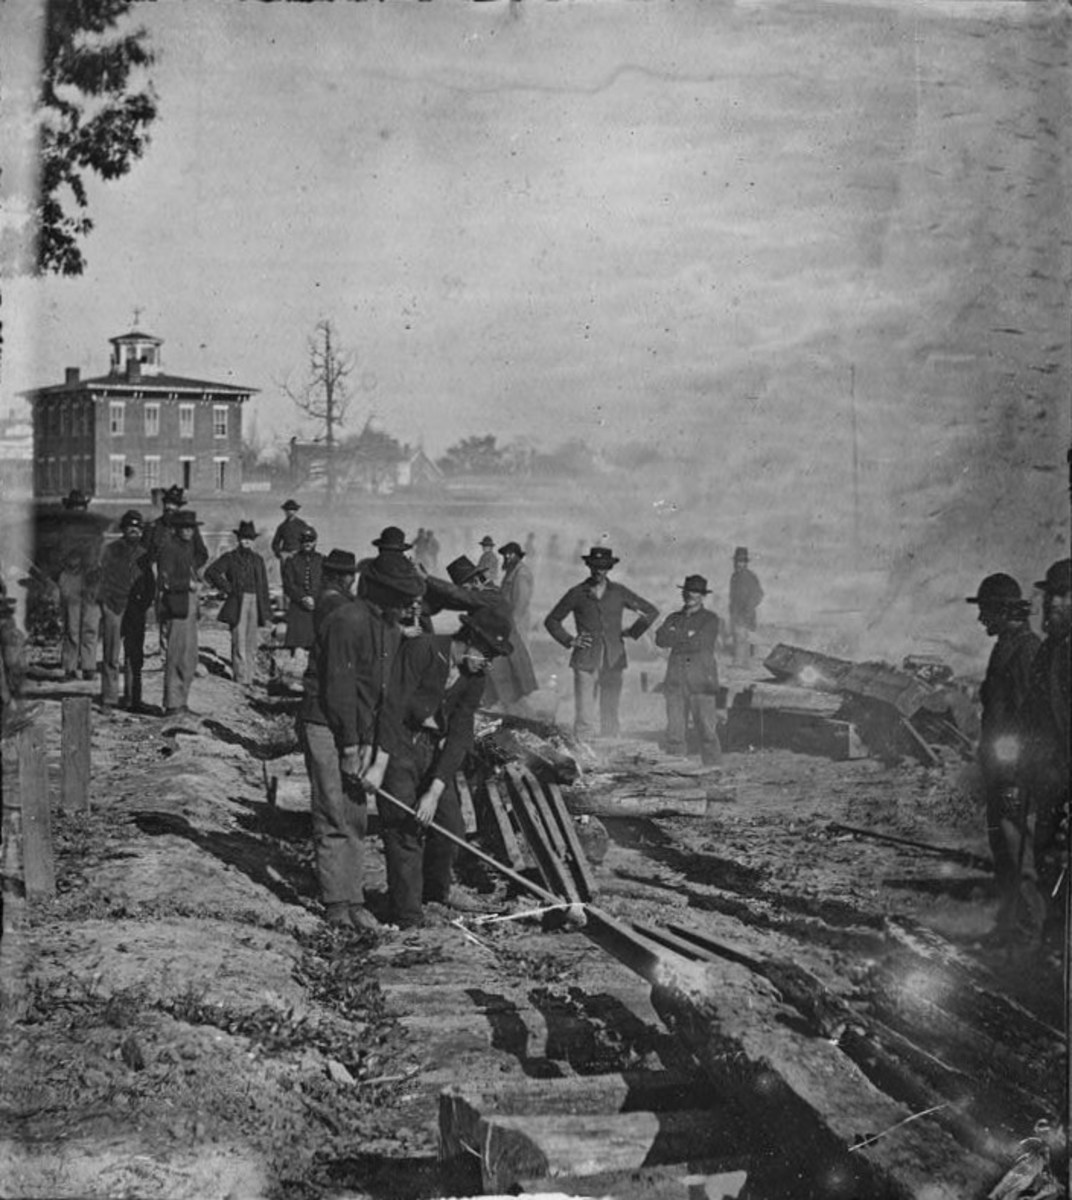 Soldiers of General Sherman destroying a railroad in Atlanta in the American Civil War